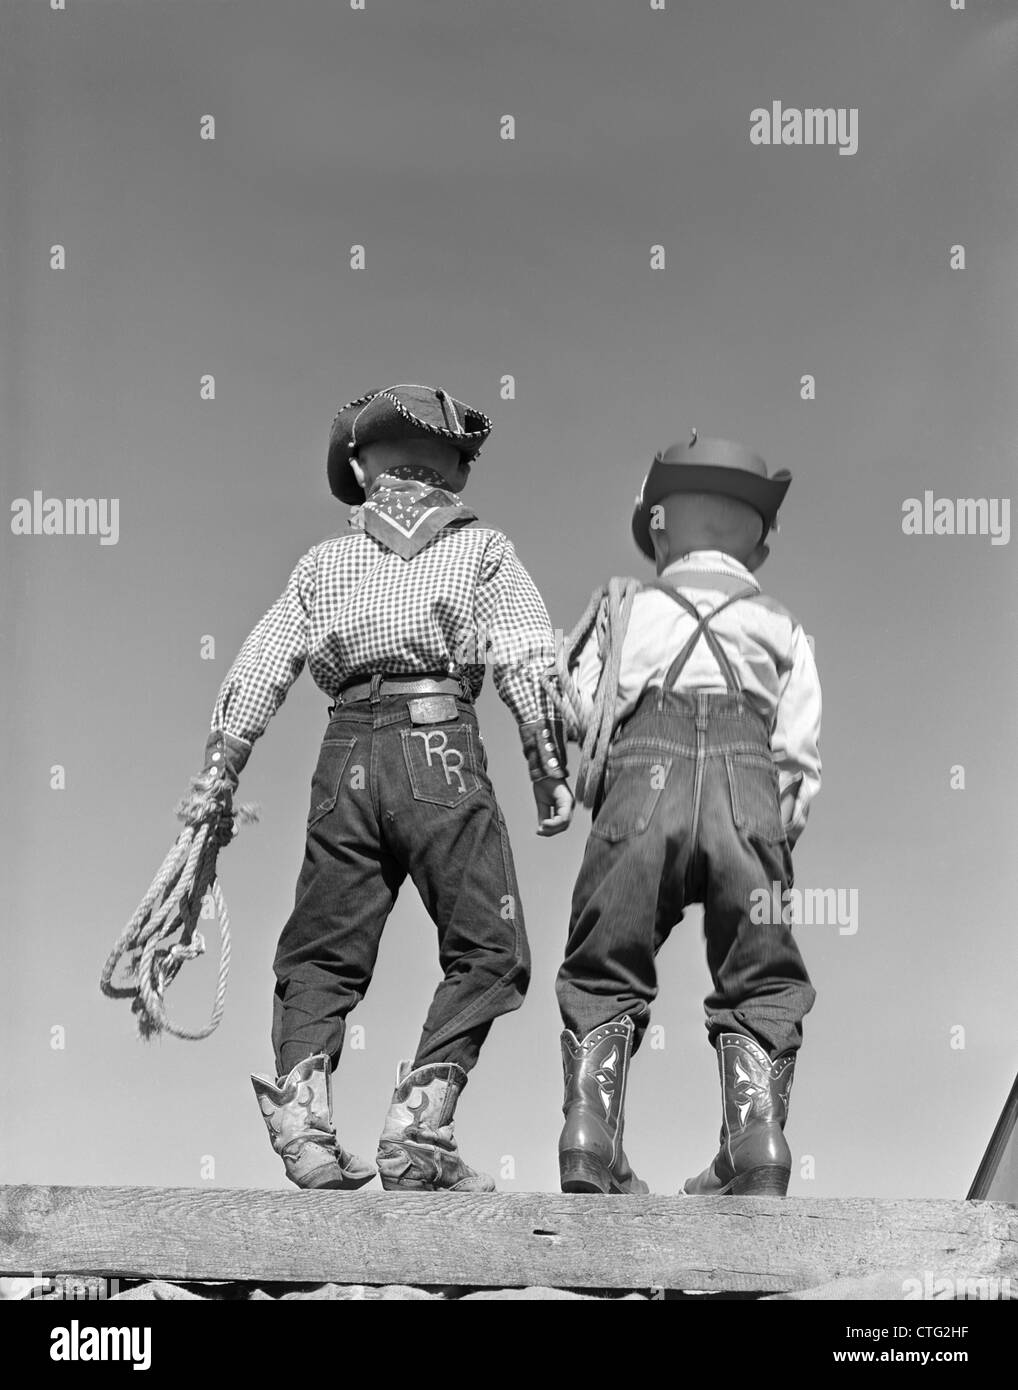 1950s BACK VIEW OF TWO BOYS DRESSED IN COWBOY COSTUME - Stock Image